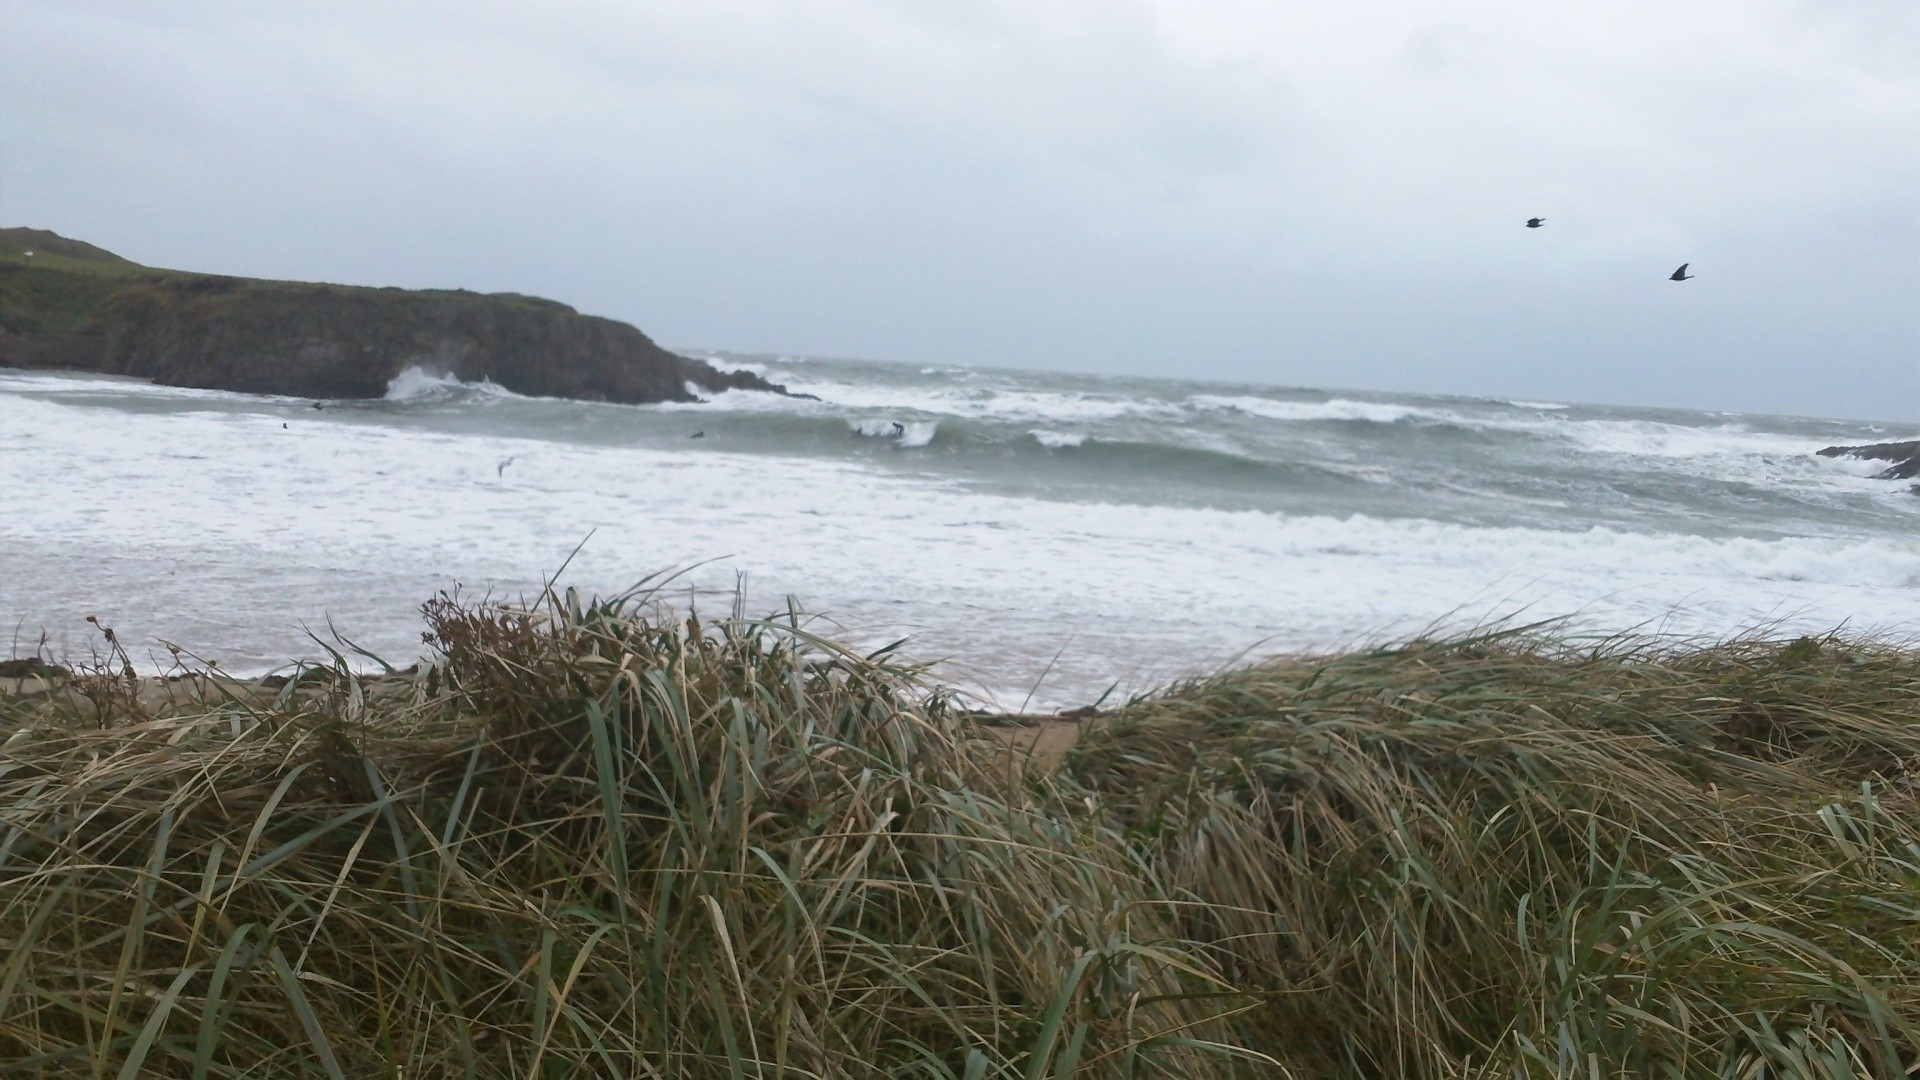 Clare Mayfield's photo of Anglesey (Ynys Môn)